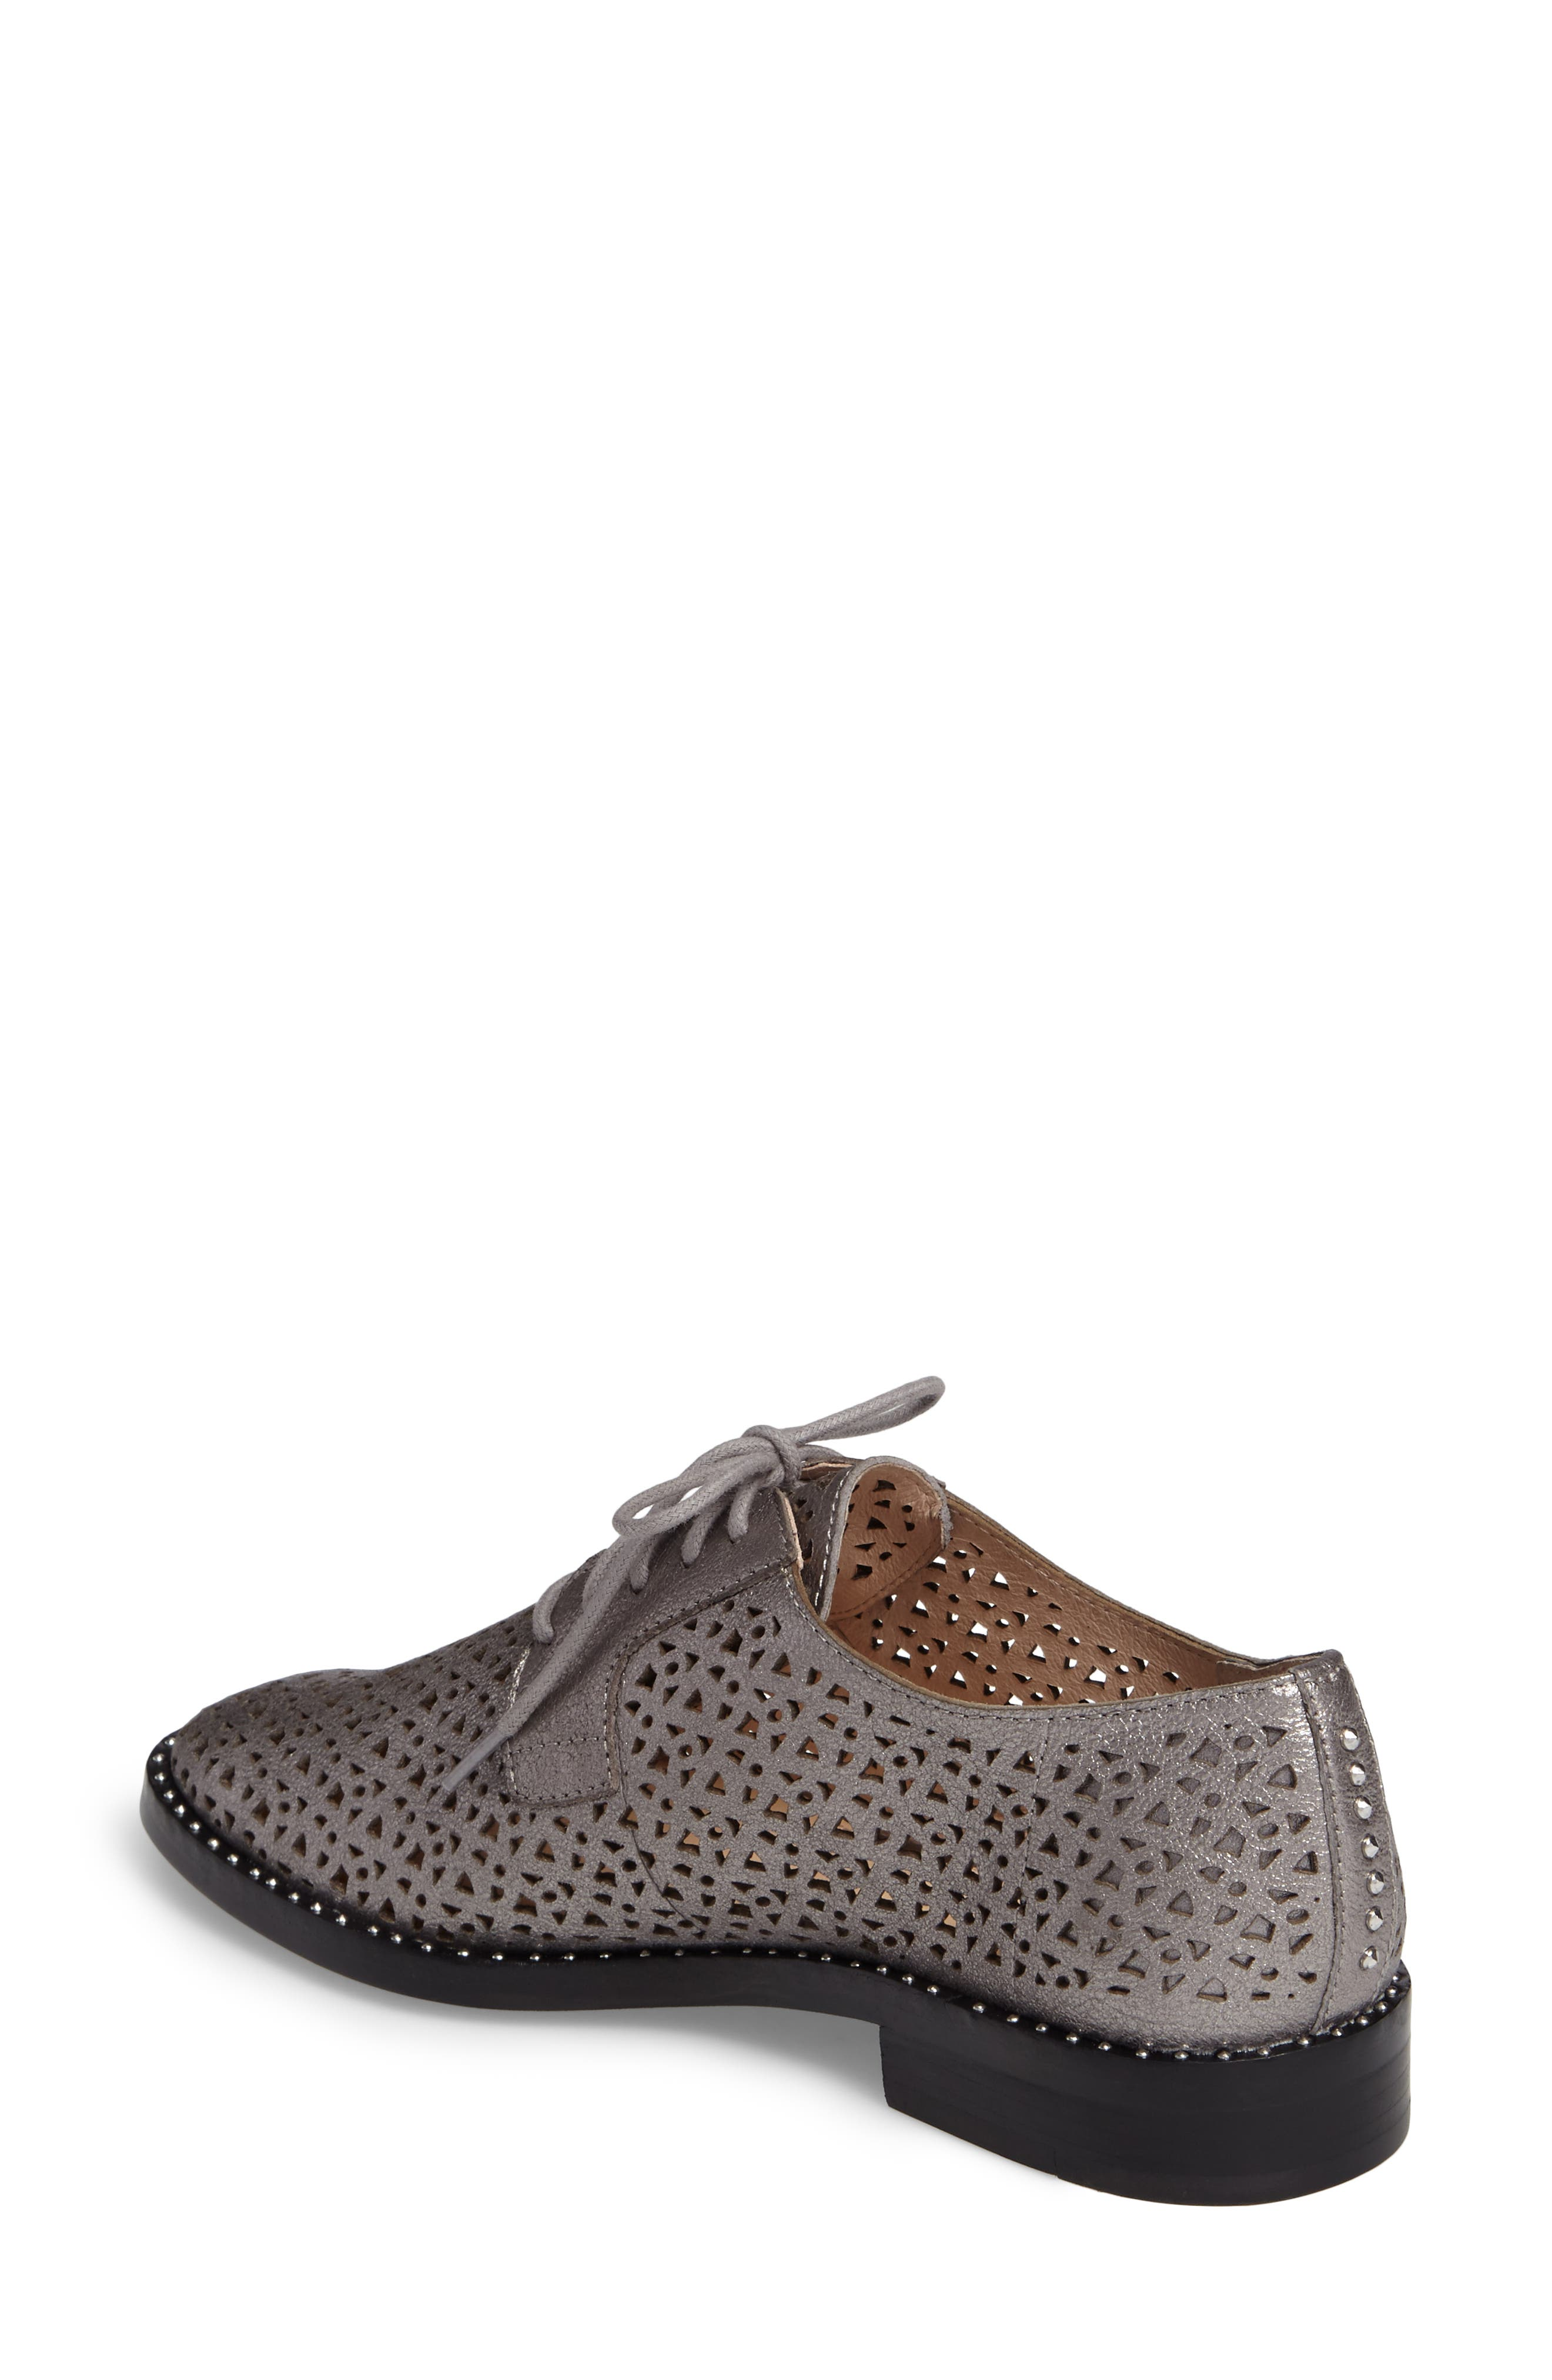 Lesta Geo Perforated Oxford,                             Alternate thumbnail 8, color,